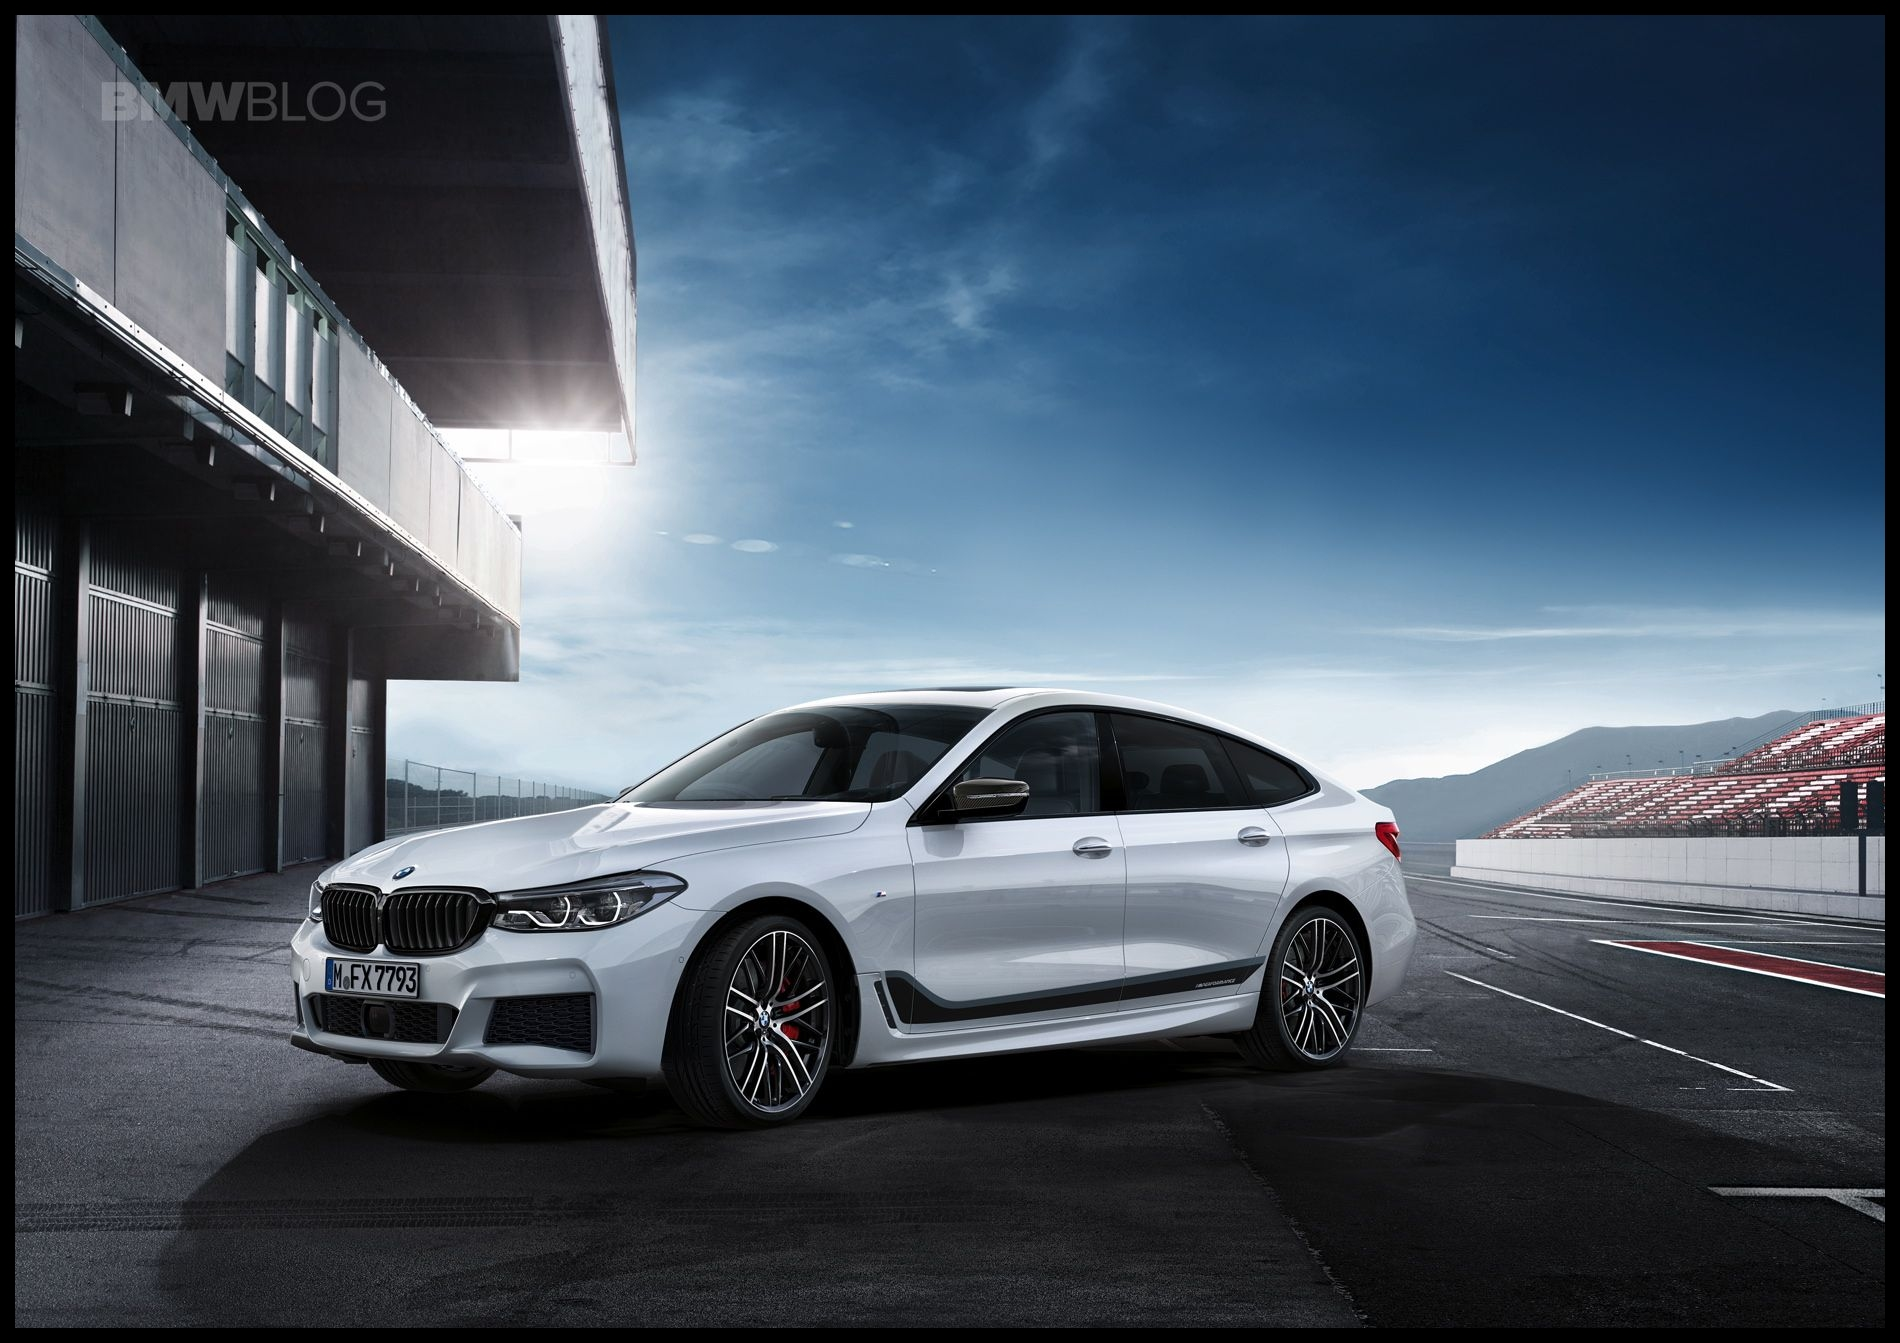 The BMW M Performance Tuning accessory for the new BMW 6 Series GT will be available directly to the market launch on November 11 2017